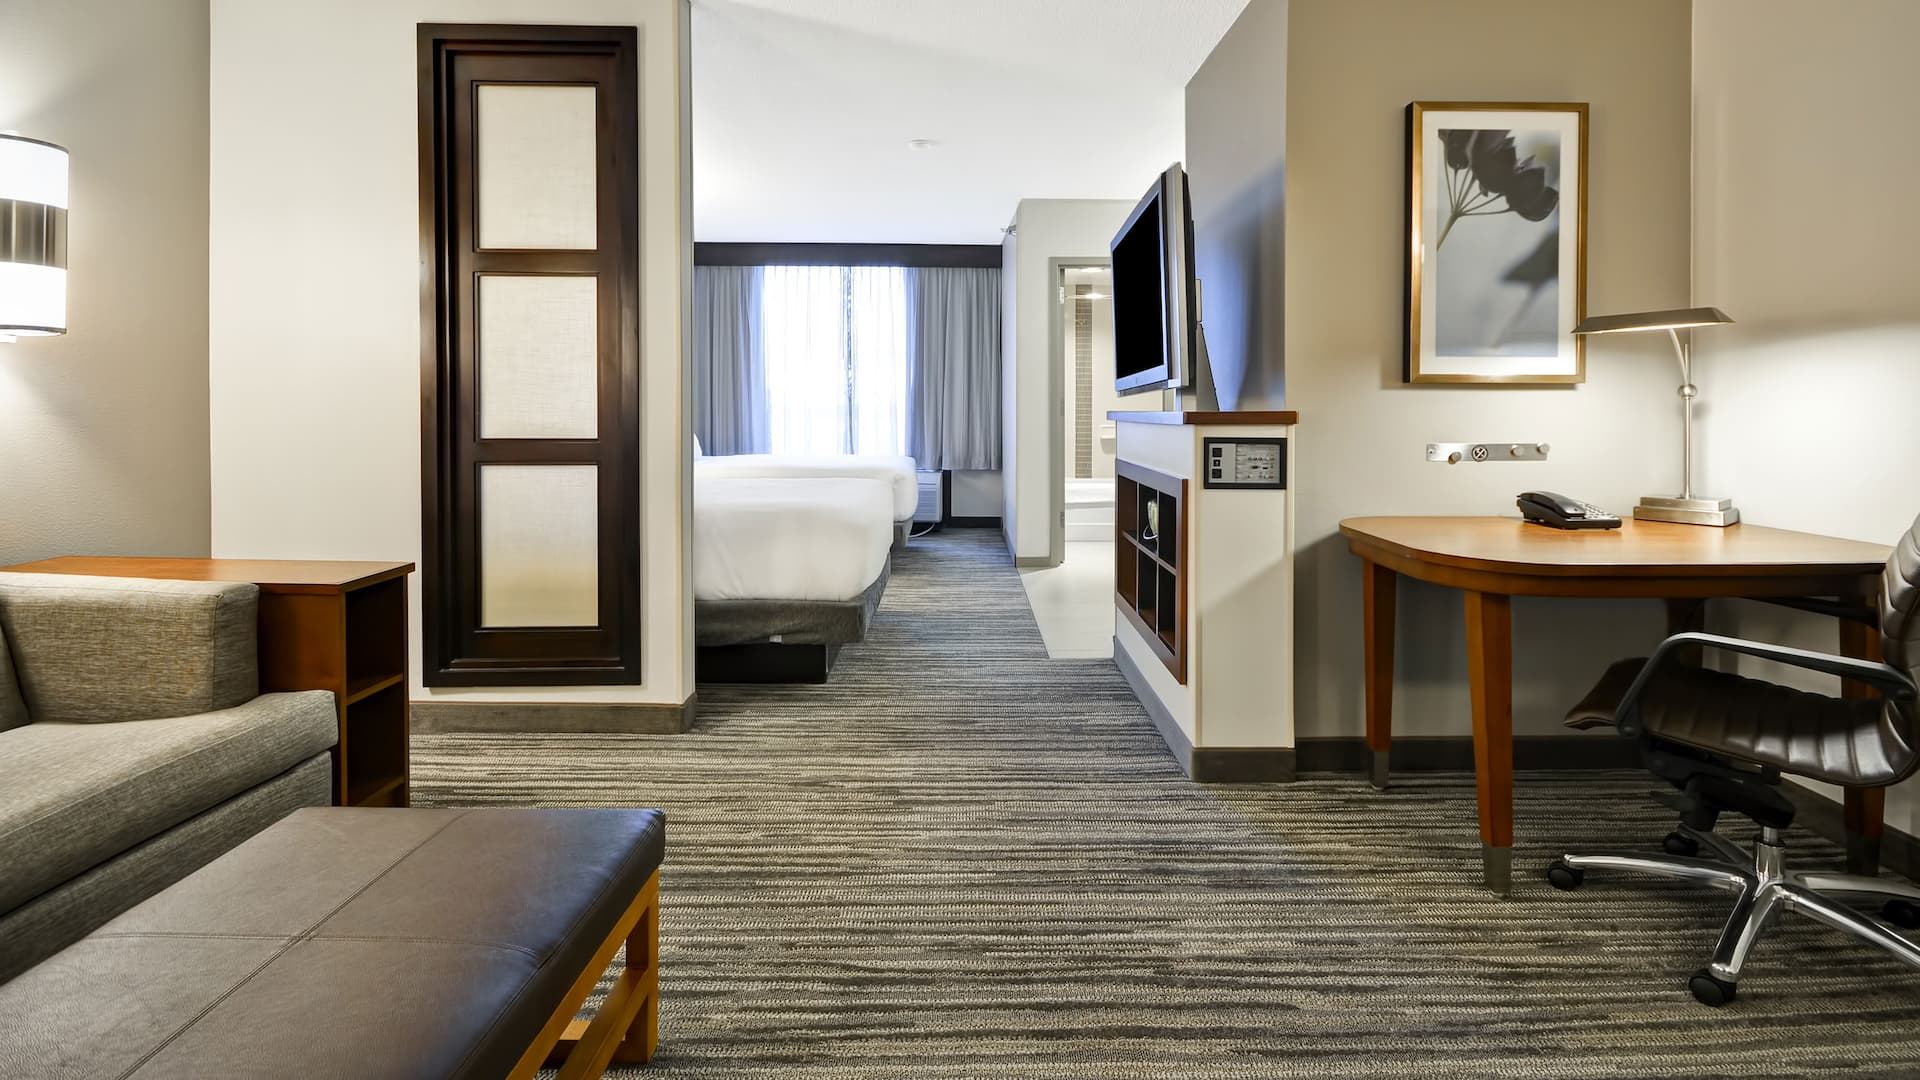 Hyatt Place Kansas City / Overland Park / Metcalf King Room